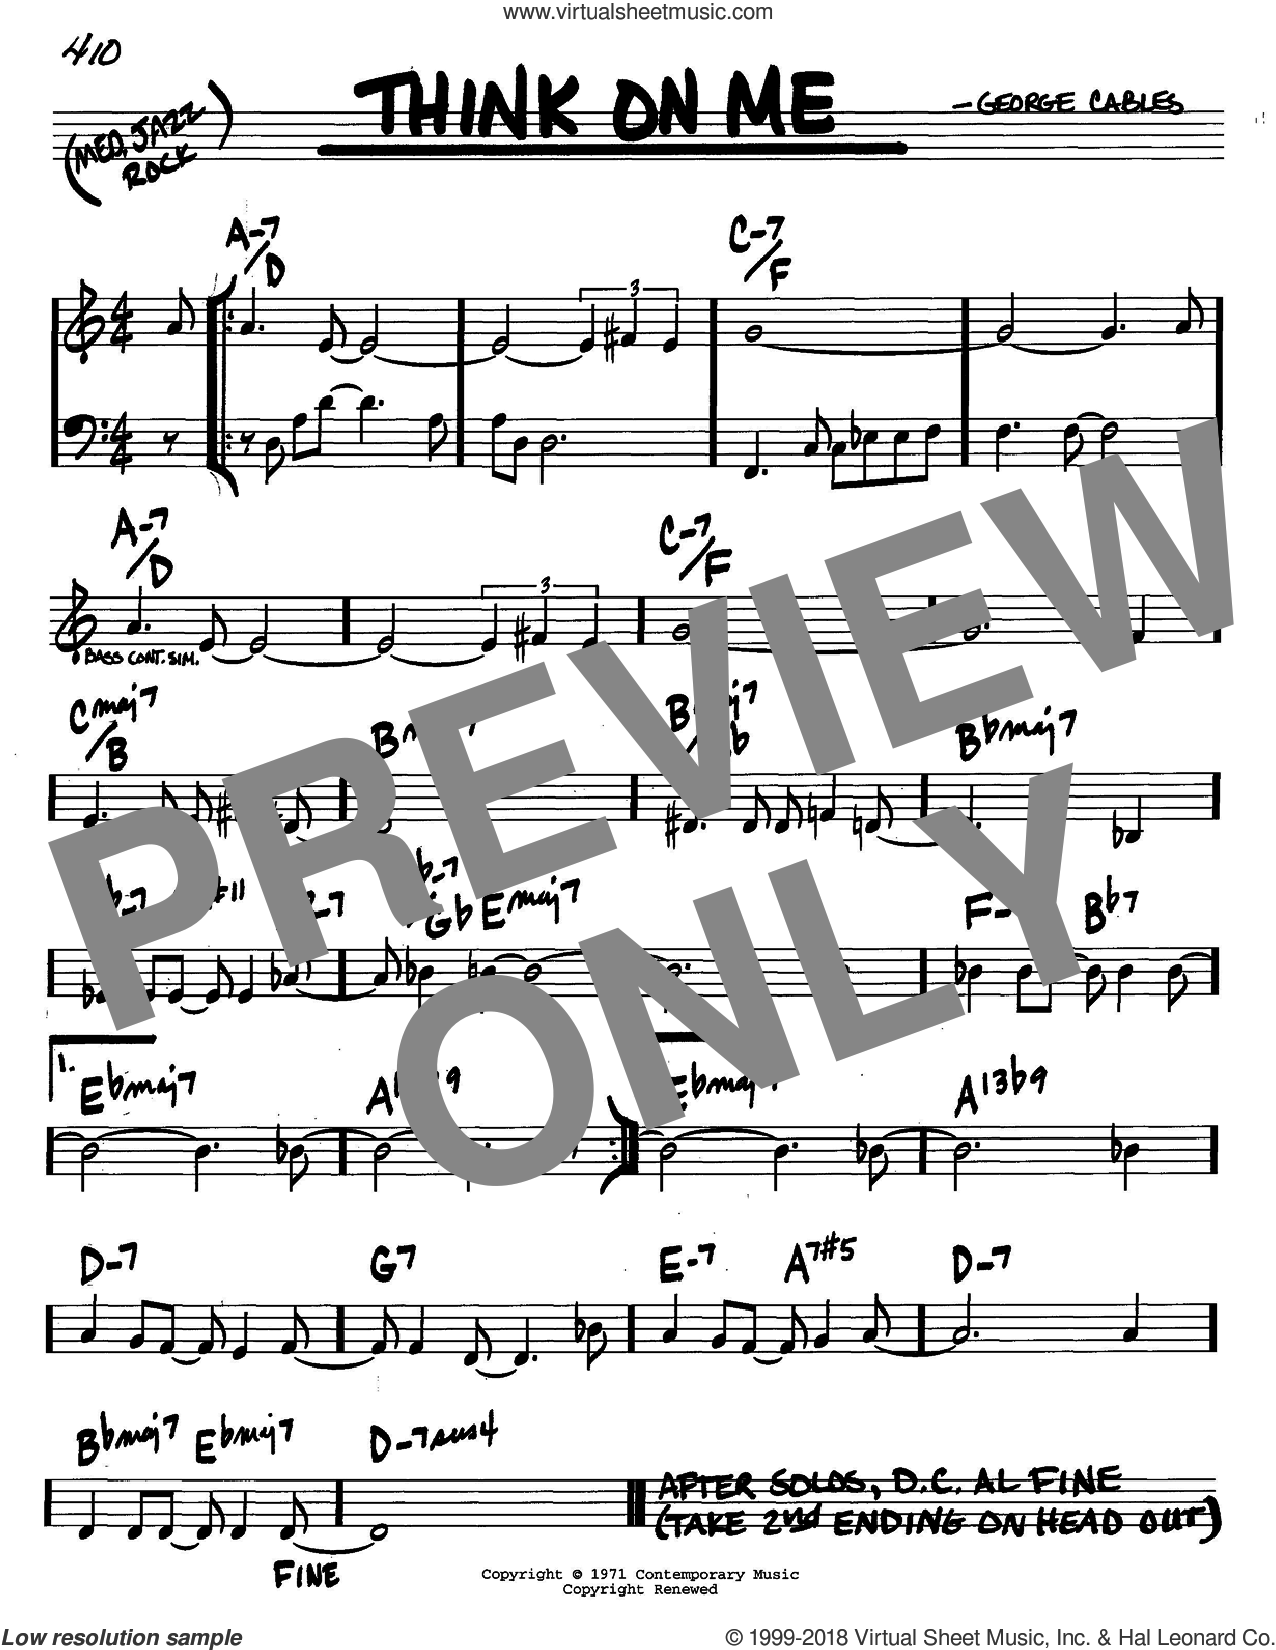 Think On Me sheet music for voice and other instruments (C) by George Cables